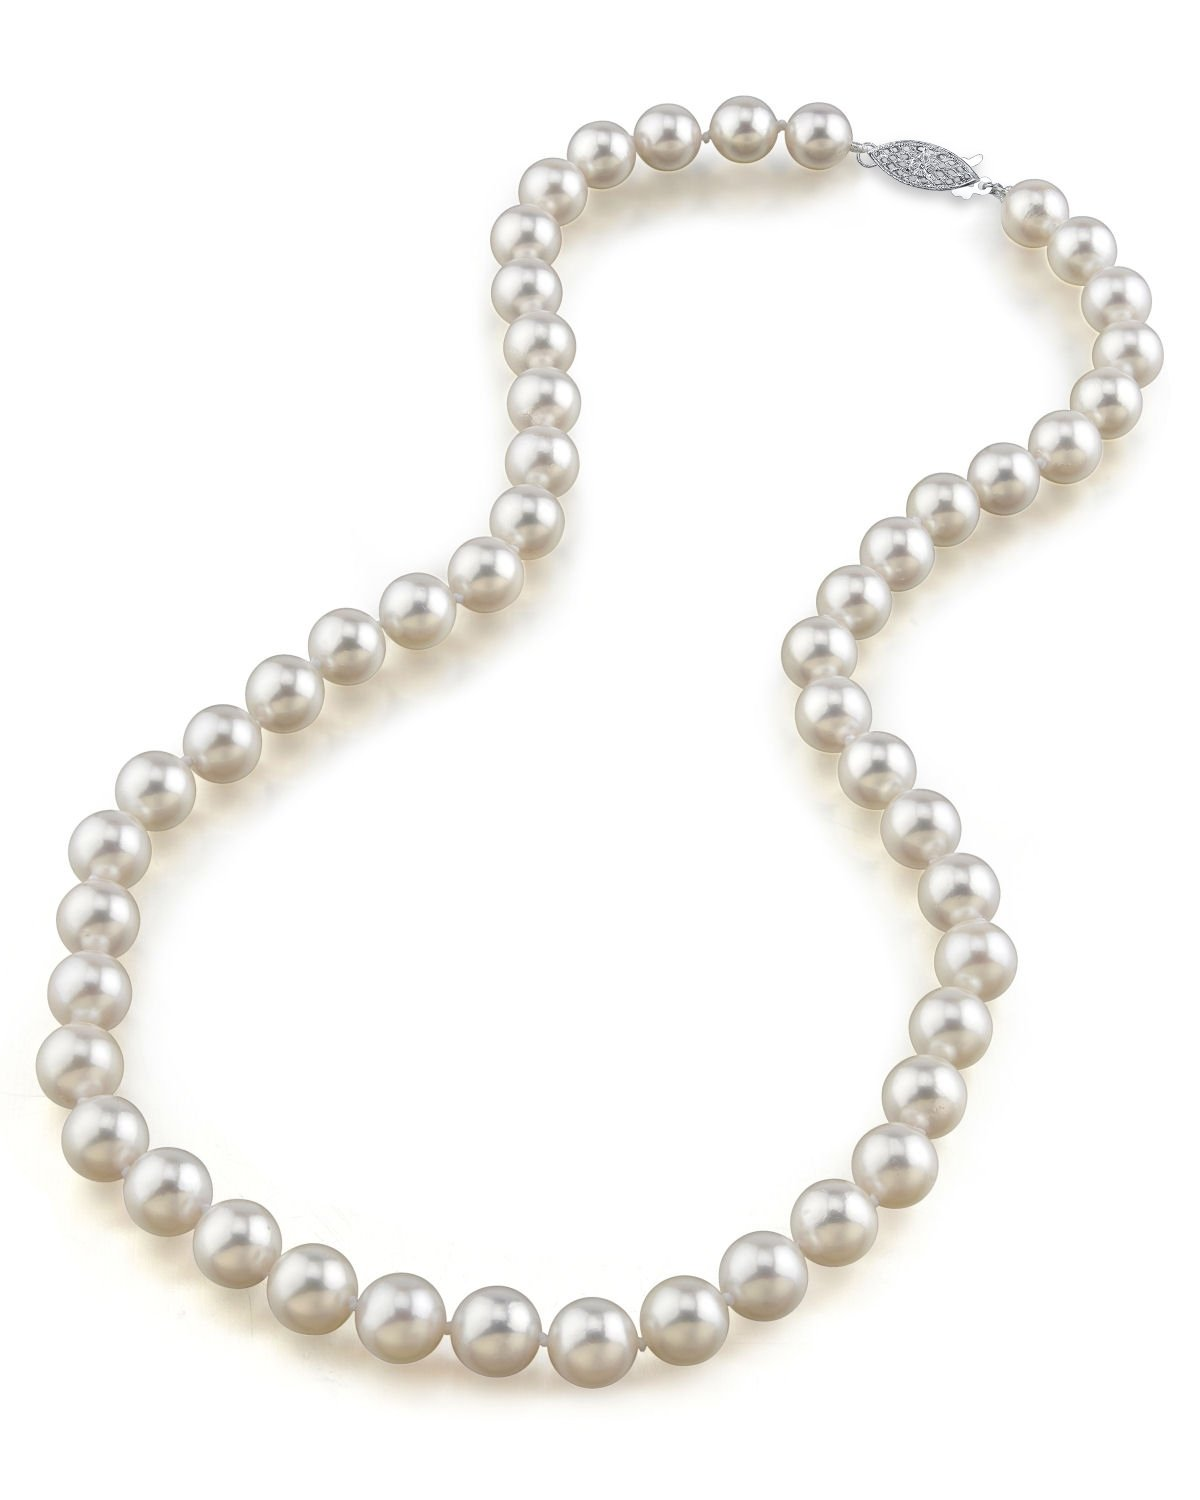 14K Gold 8.0-8.5mm Japanese Akoya Saltwater White Cultured Pearl Necklace - AAA Quality, 18'' Princess Length